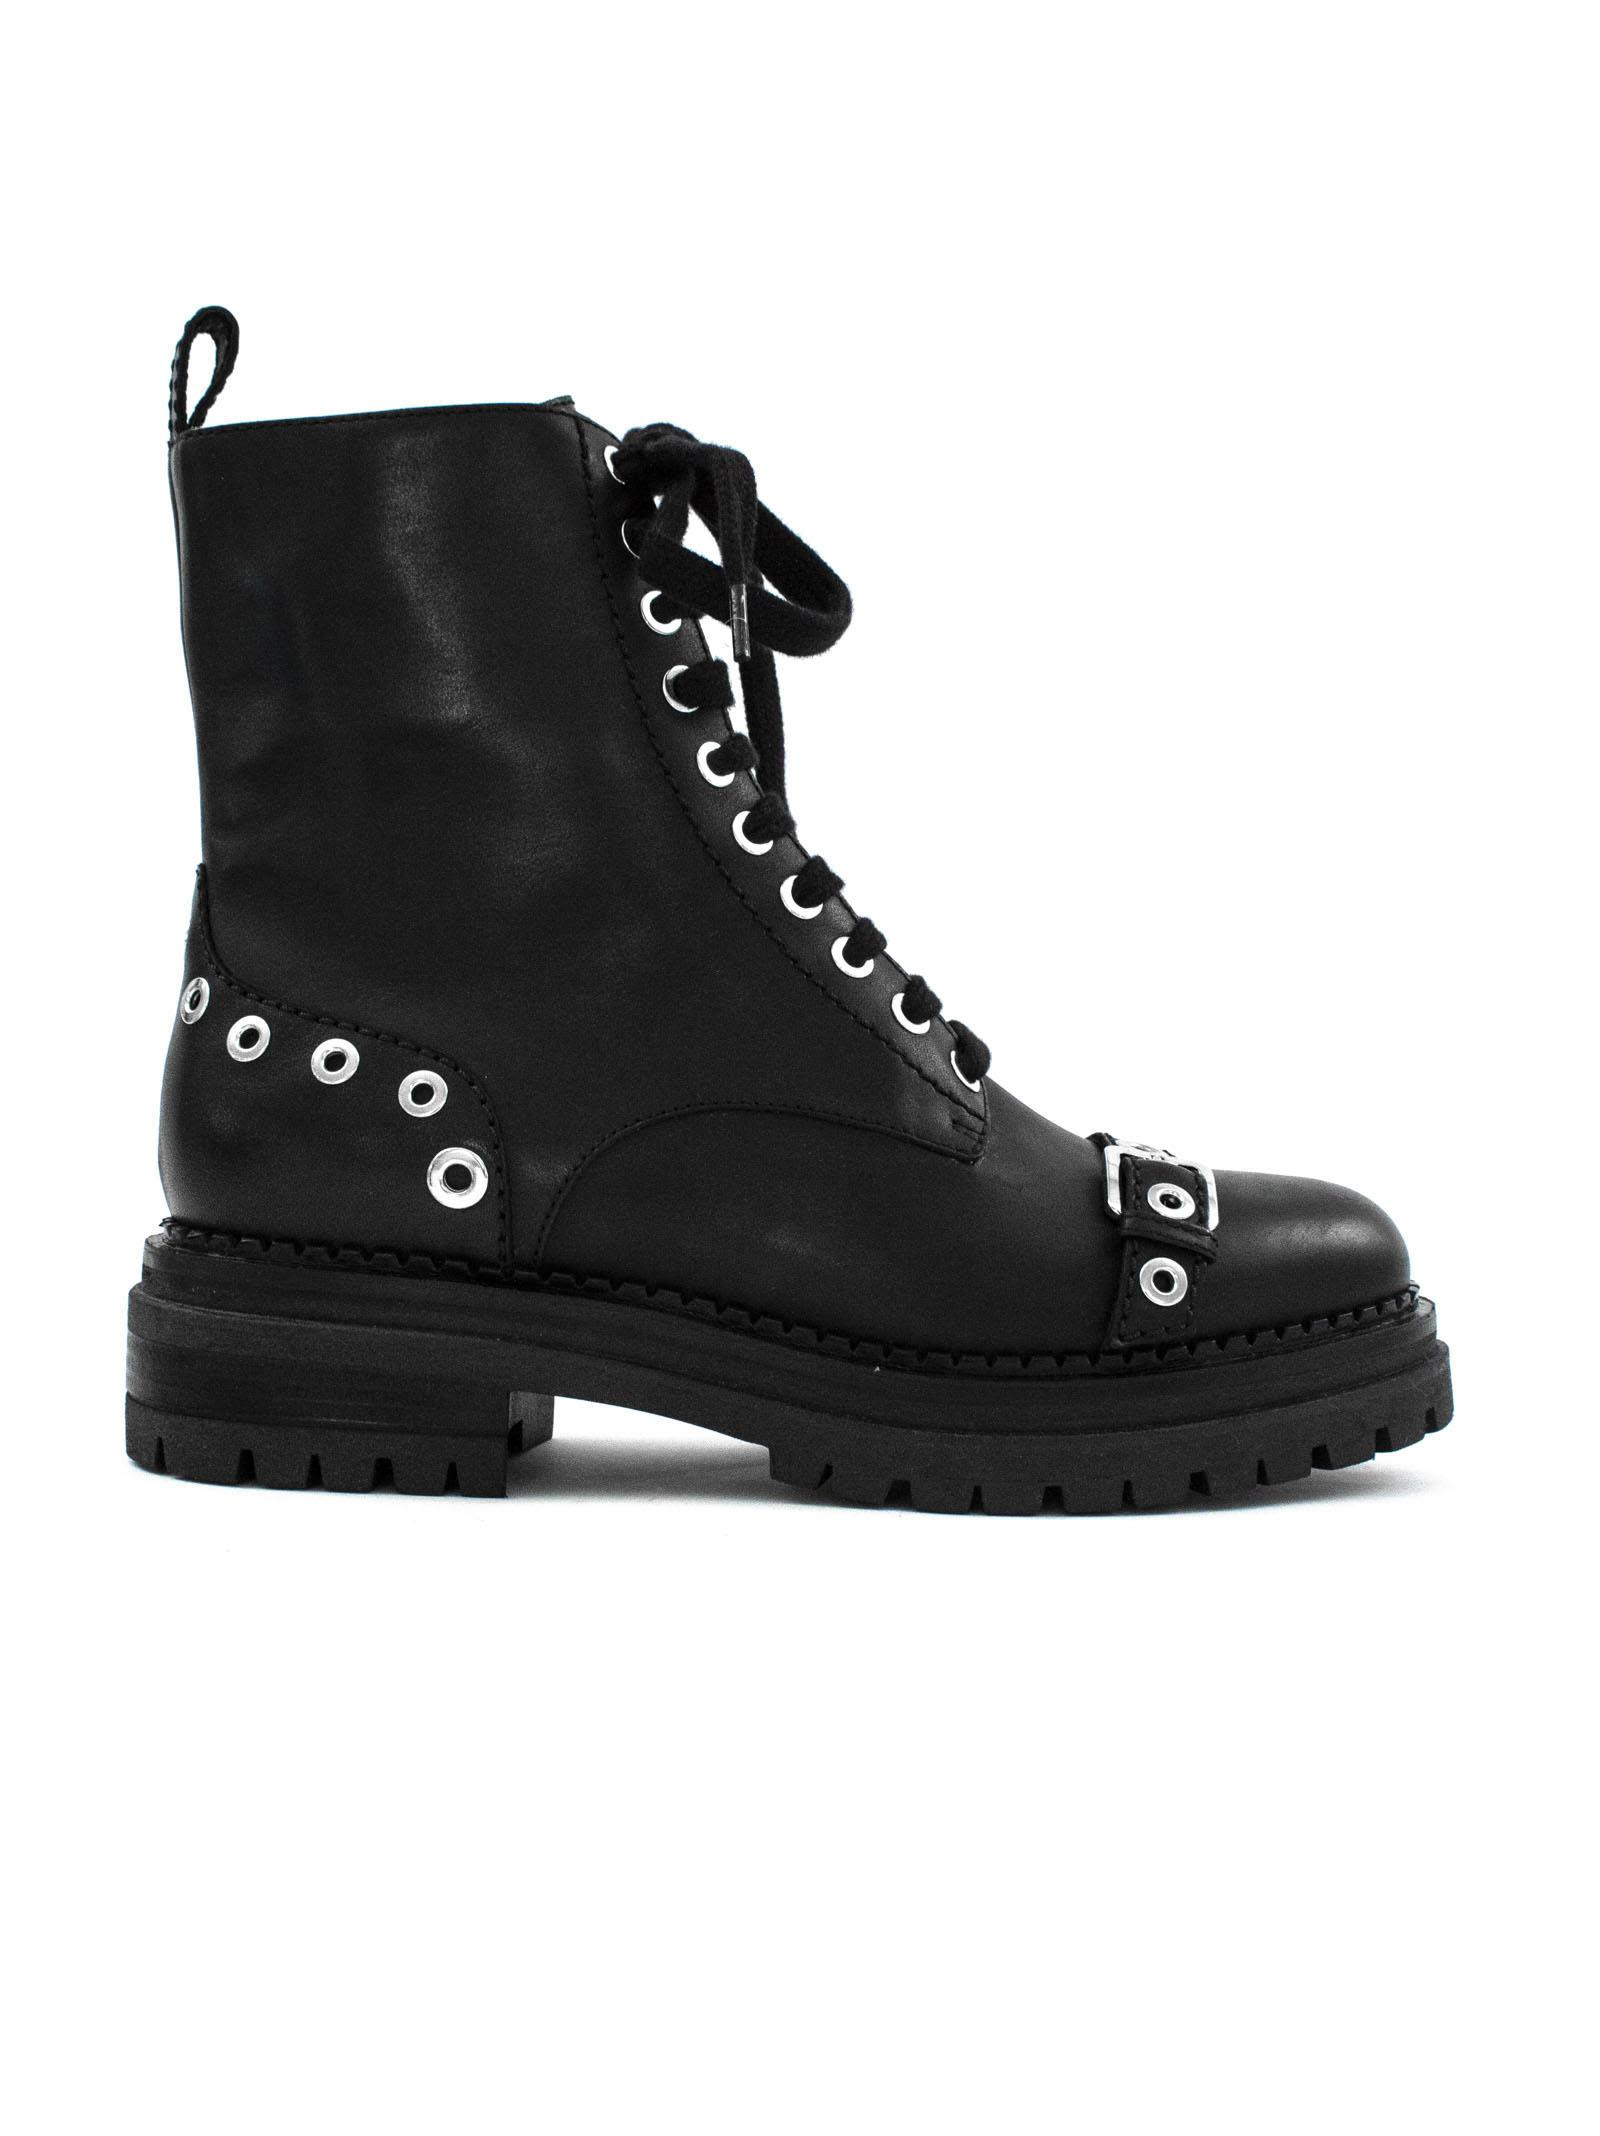 sergio rossi -  Black Leather Lace-up Boots.